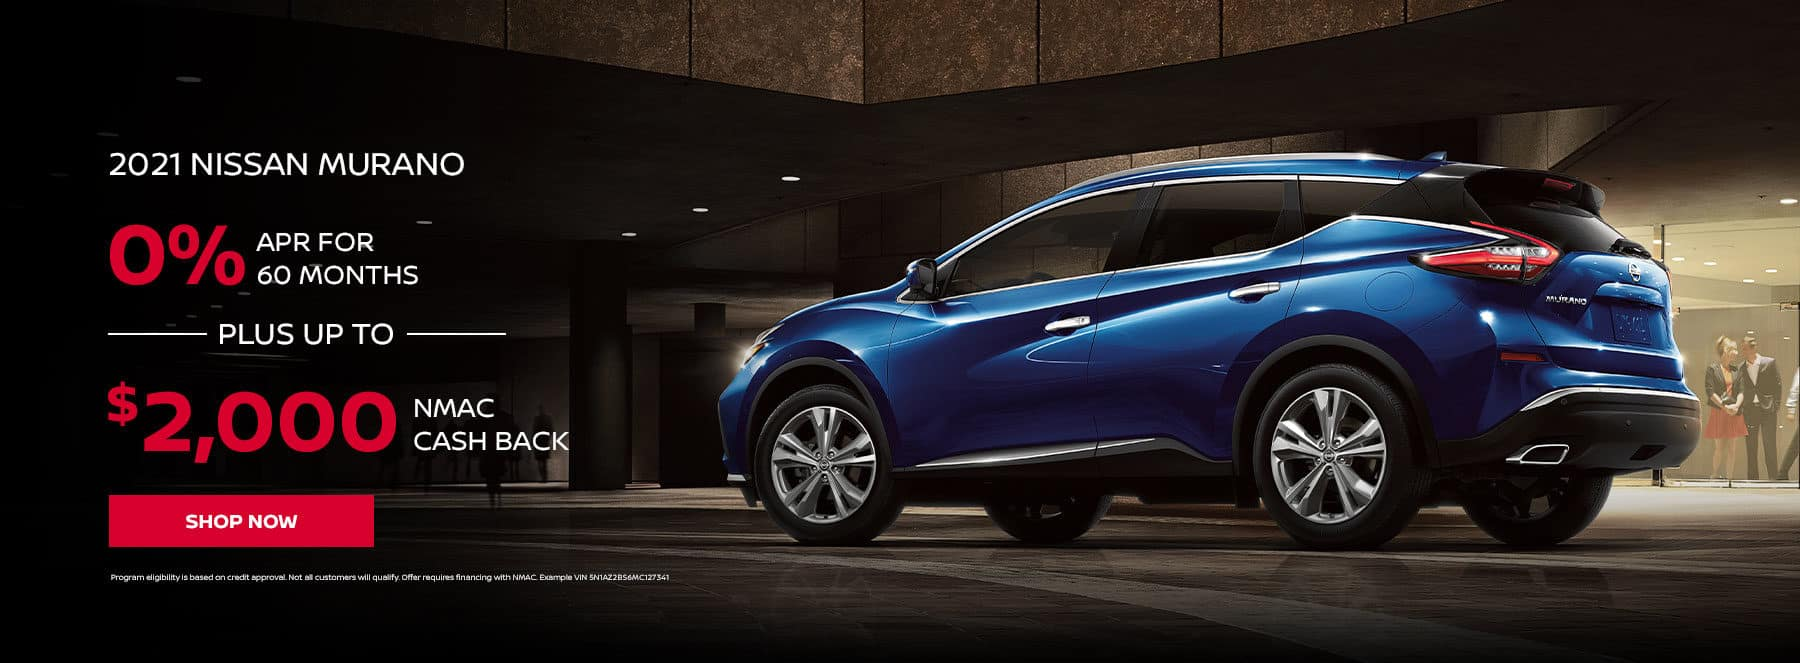 2021 NISSAN MURANO 0% APR for 60 months +up to $2000 cash back